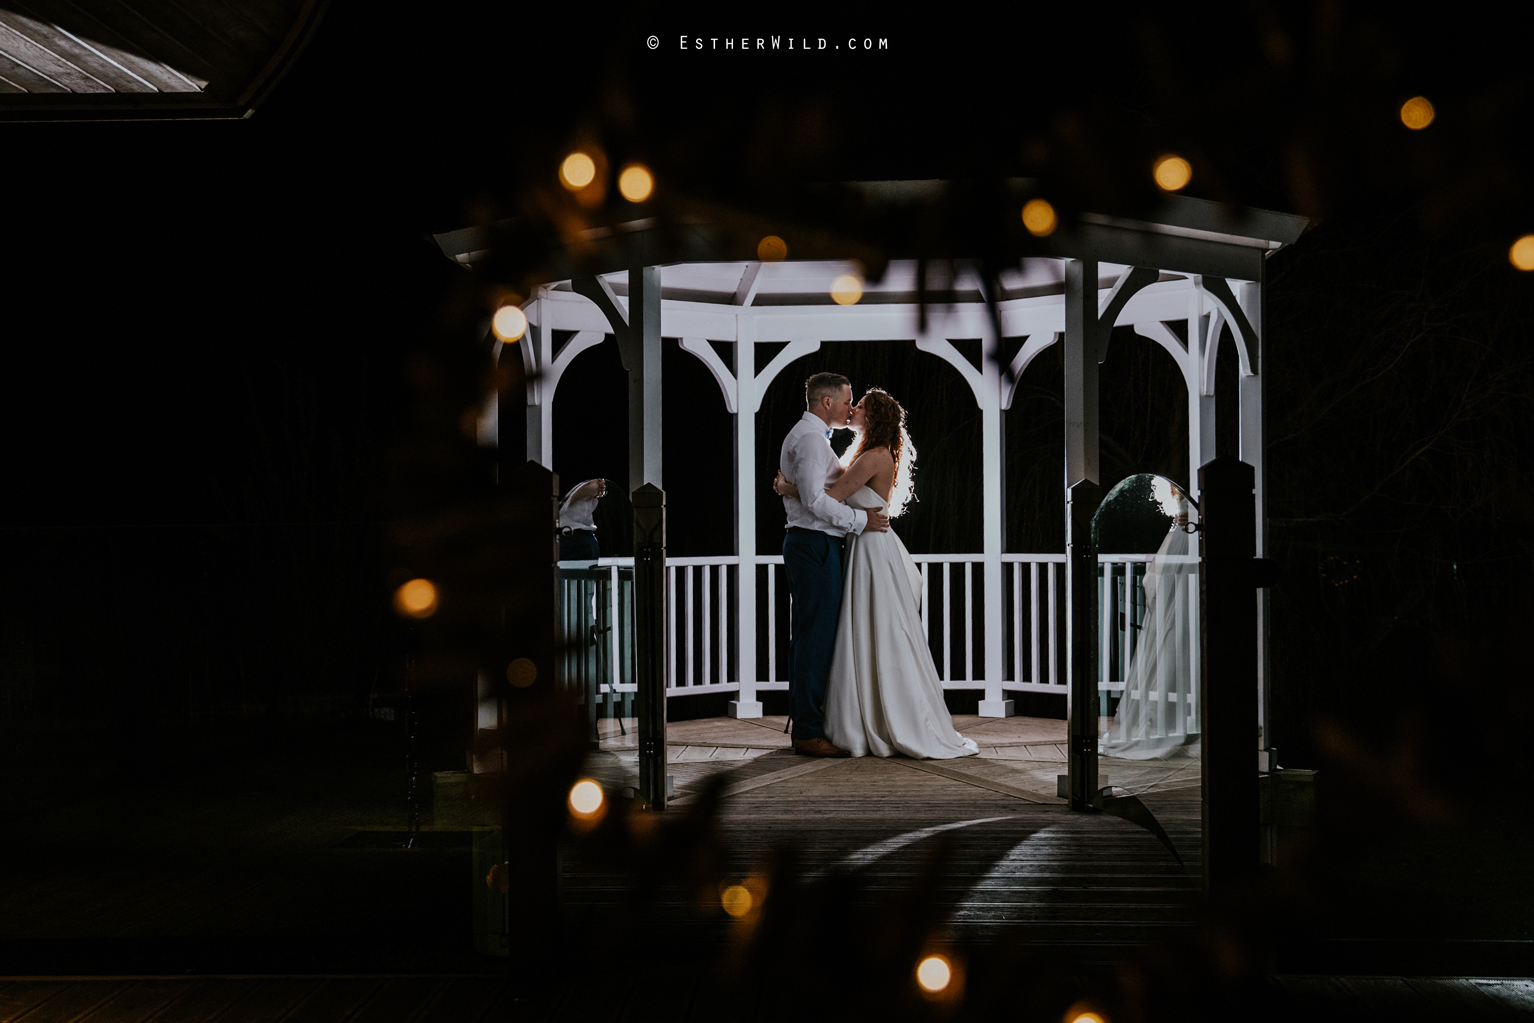 The_BoatHouse_Wedding_Venue_Ormesby_Norfolk_Broads_Boat_Wedding_Photography_Esther_Wild_Photographer_IMG_3961.jpg